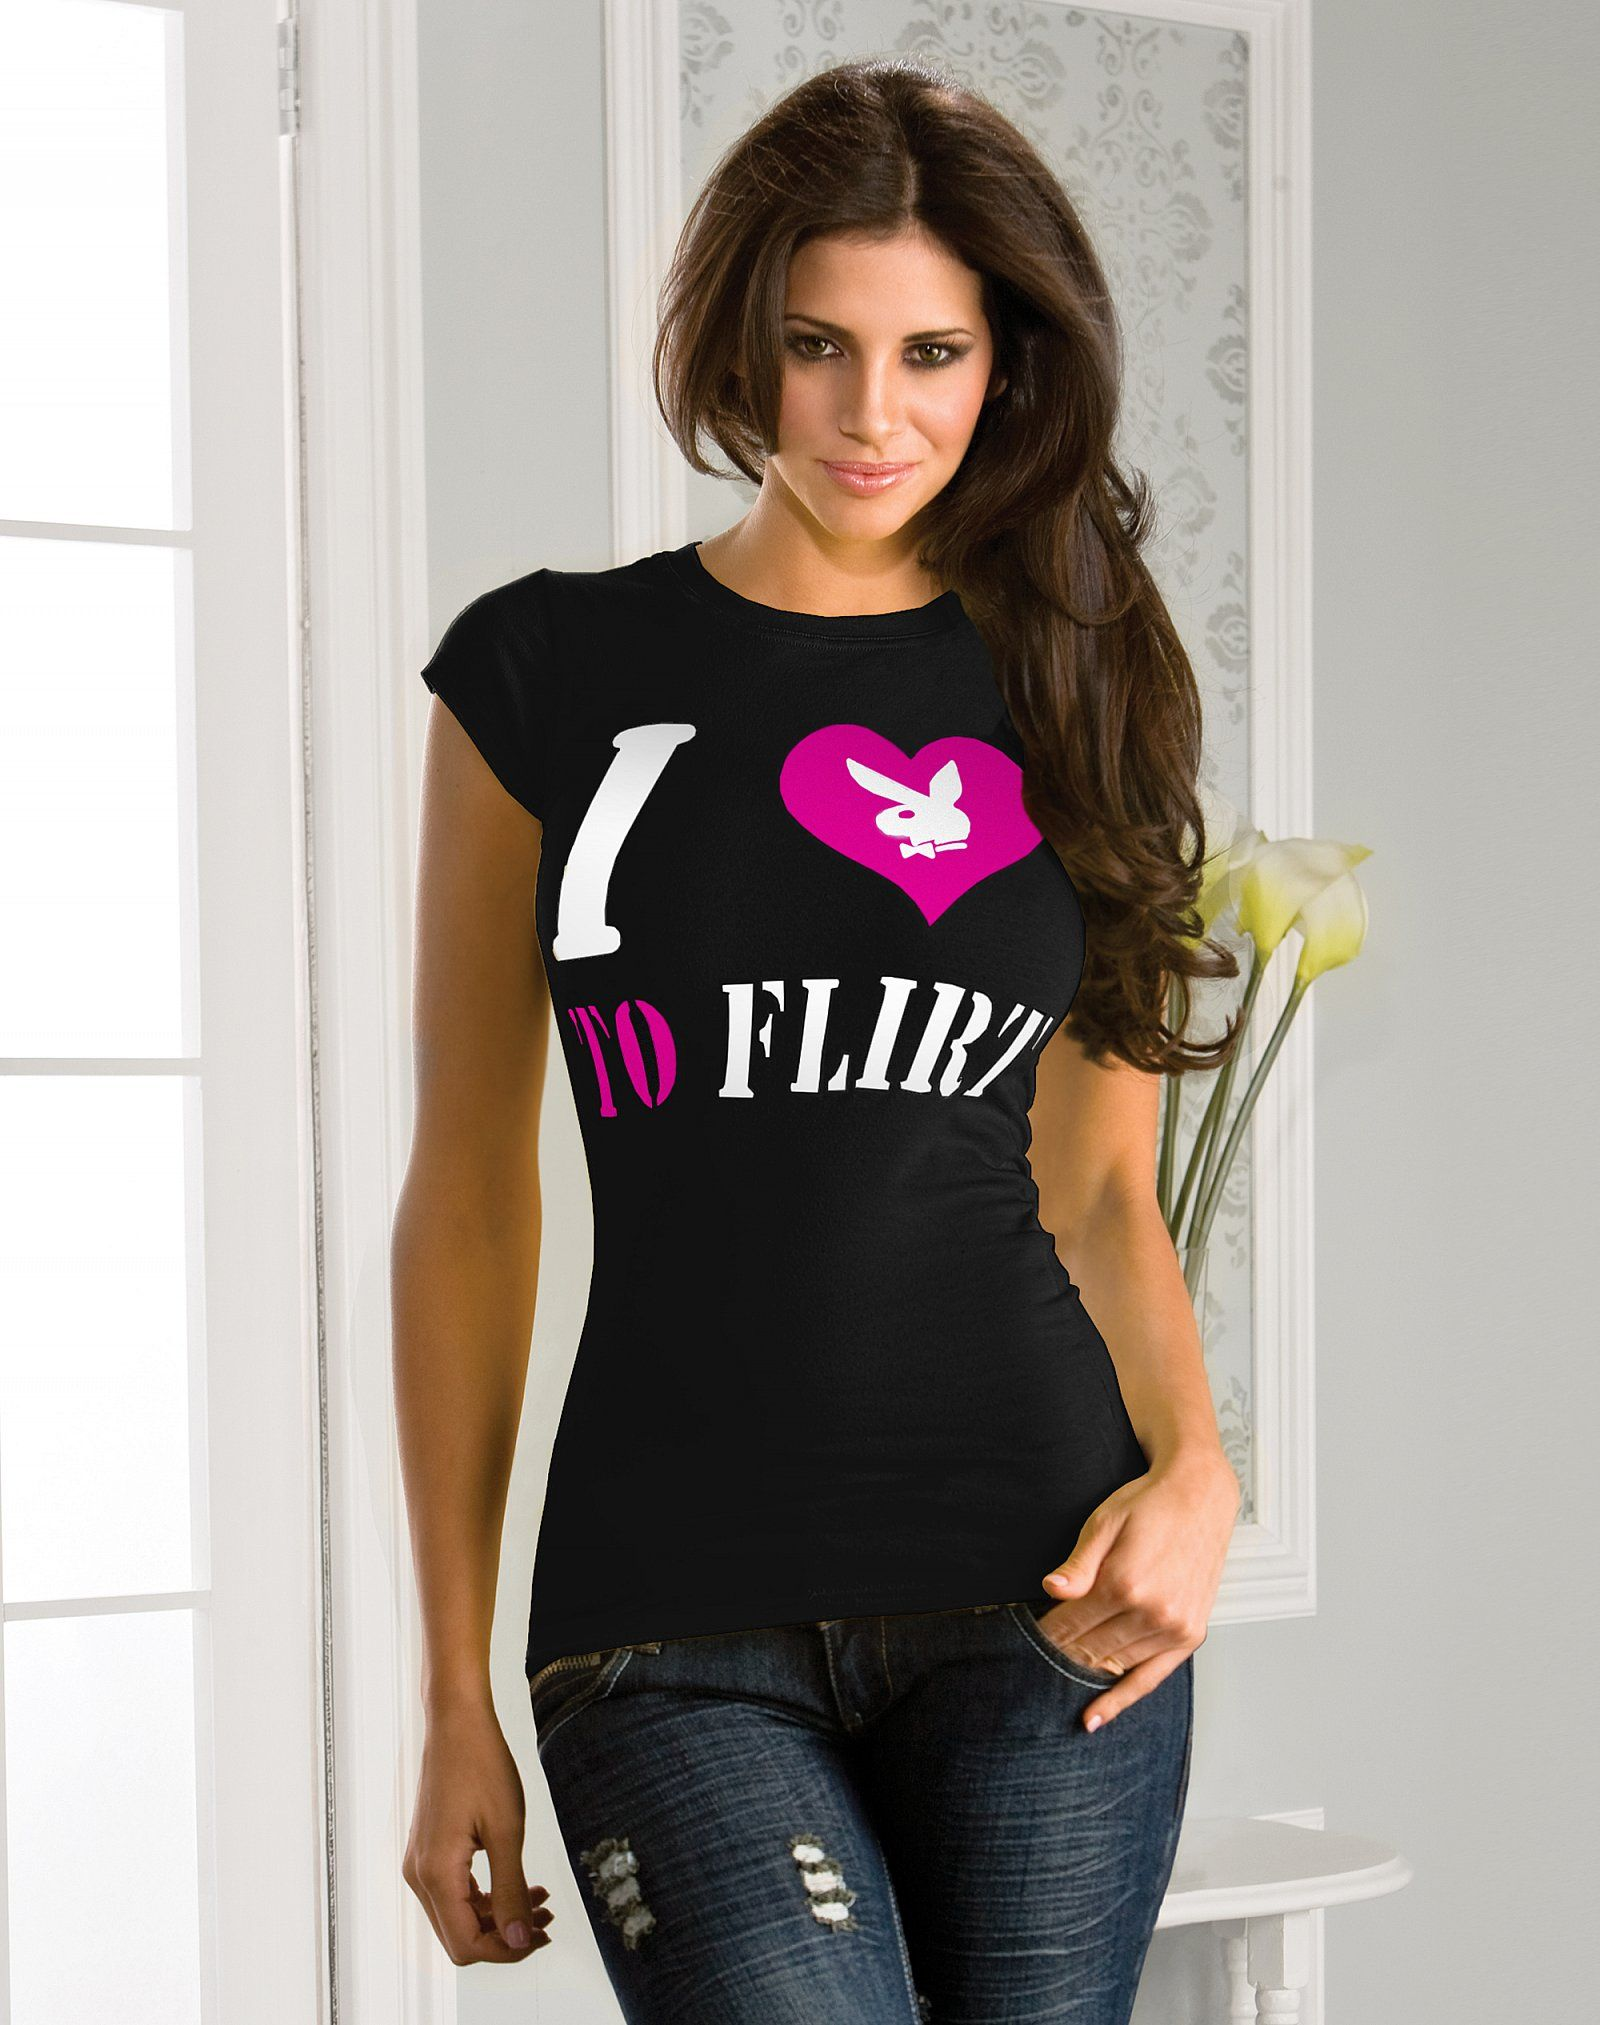 Hope Dworaczyk Miss April 2009 Playmate Of The Year 2010 Hope Dworaczyk Women Lovely Tops